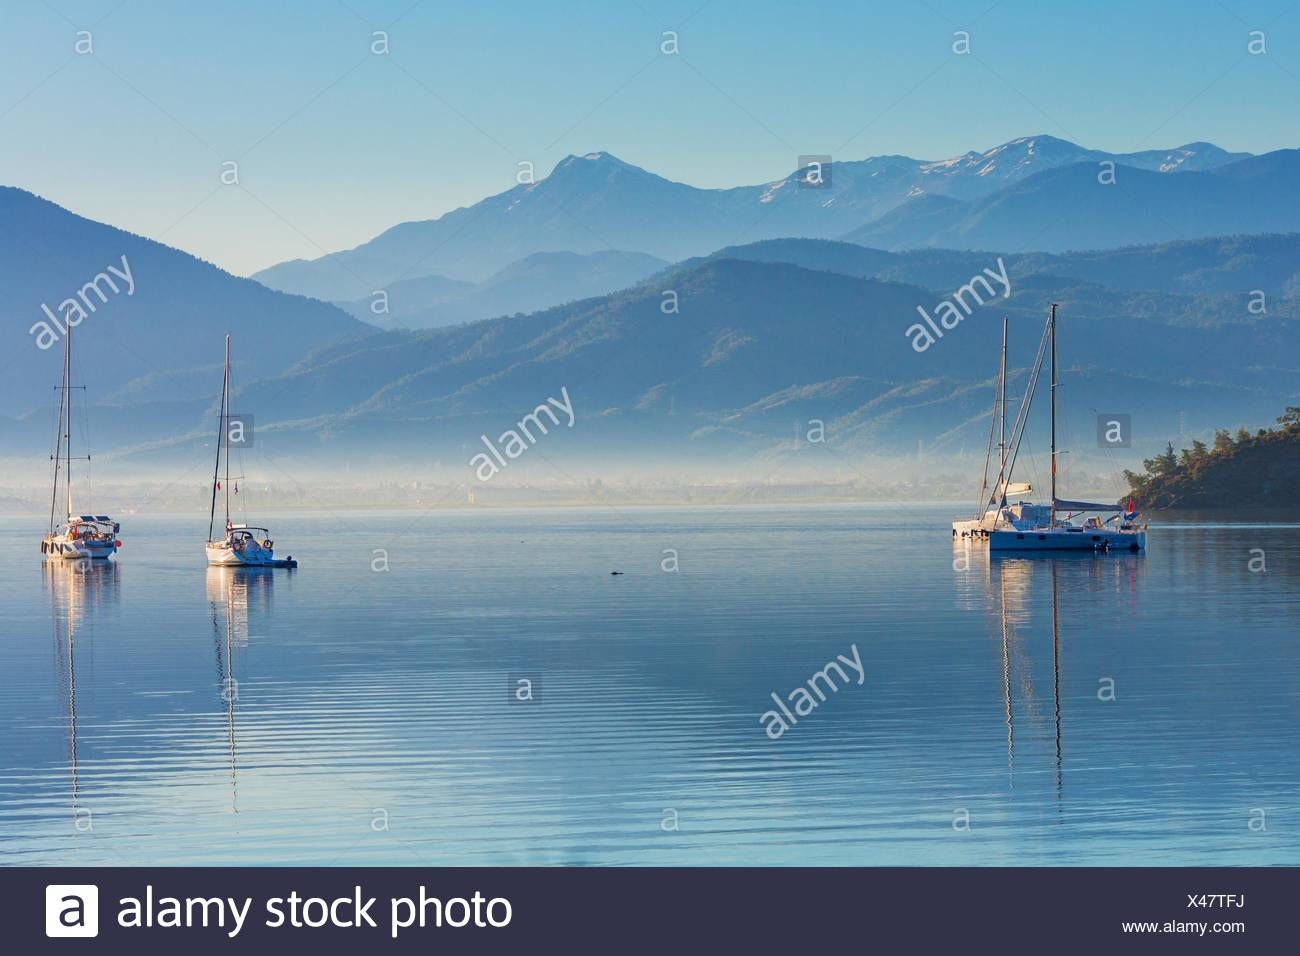 Anchored yachts at misty morning on the lake on mountains background, Fethiye, Mugla Province, Turkey Stock Photo